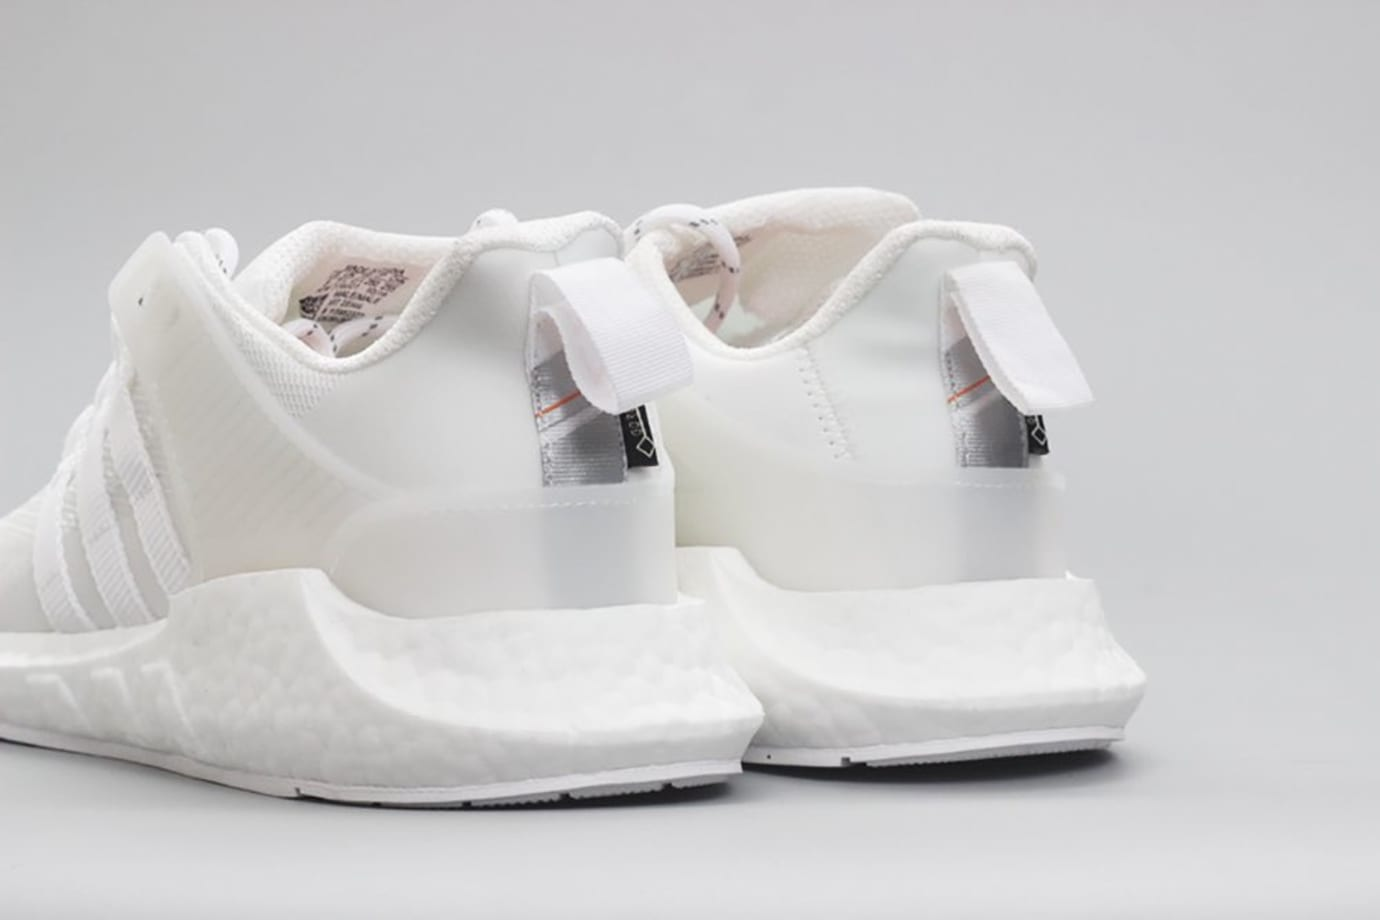 Adidas EQT Support 93/17 Gore-Tex White Release Date Heel